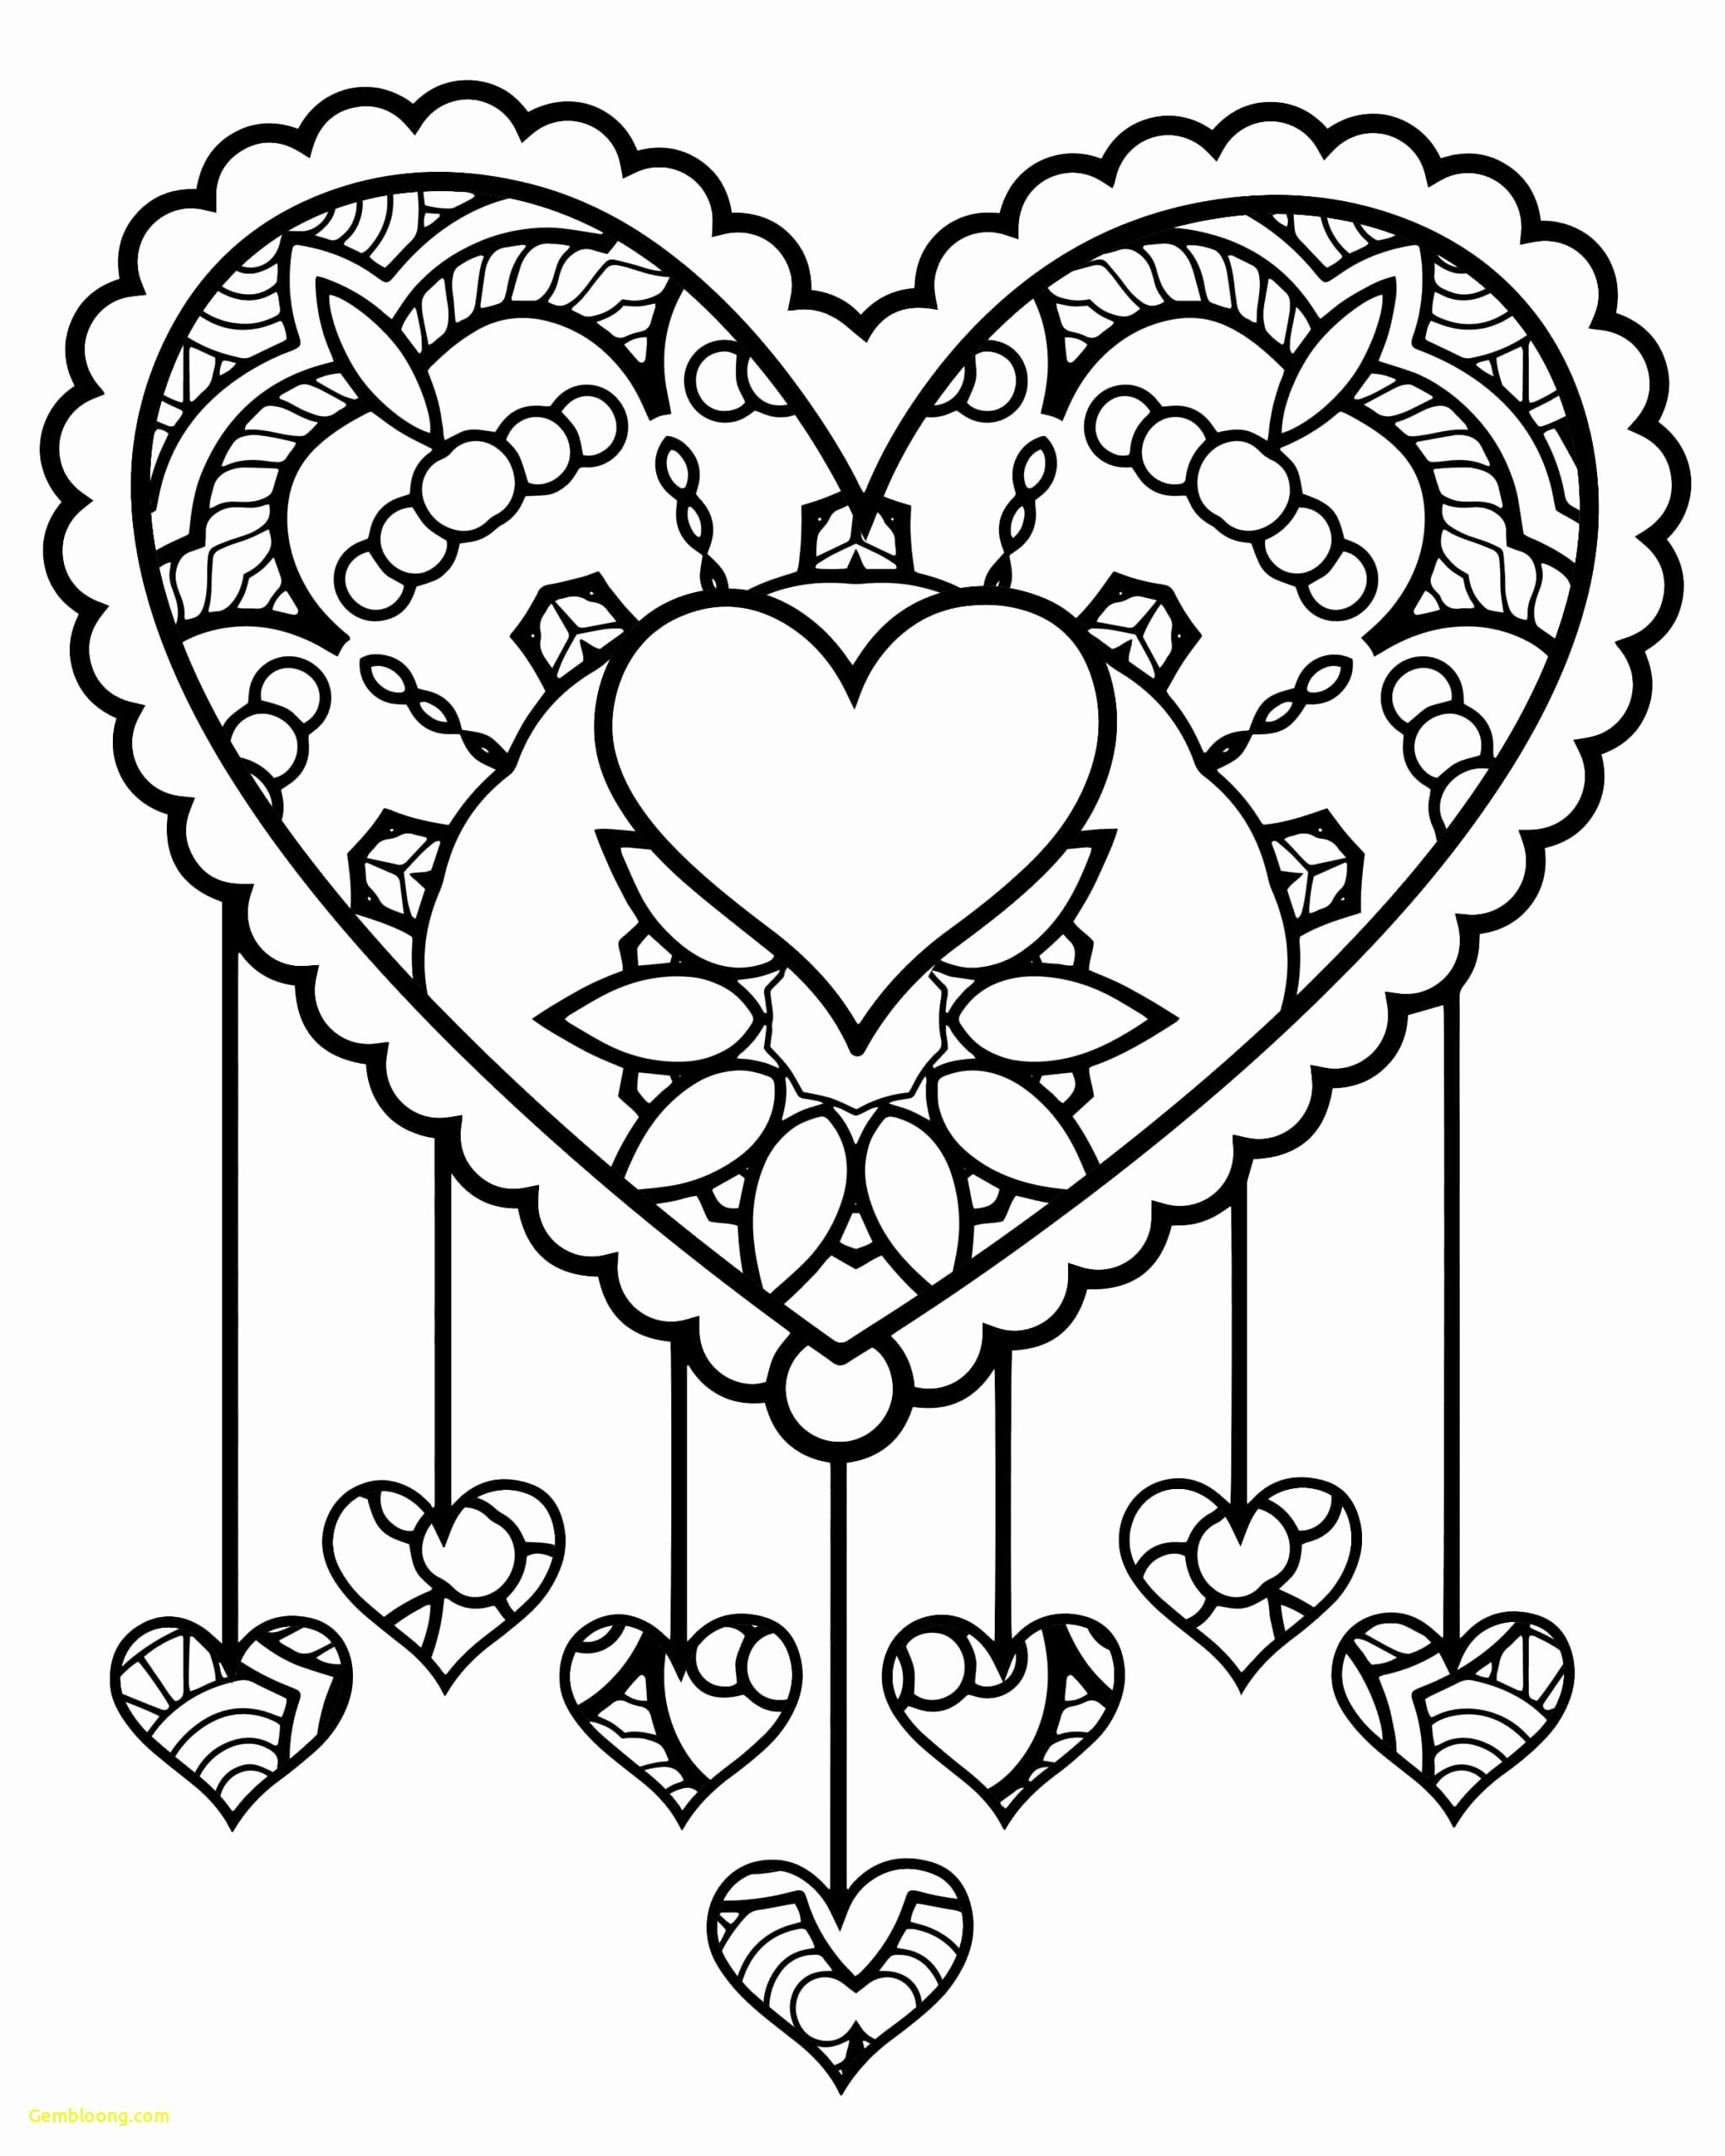 Pin By Carla Walton On Make A Hardcopy Valentine Coloring Pages Heart Coloring Pages Love Coloring Pages